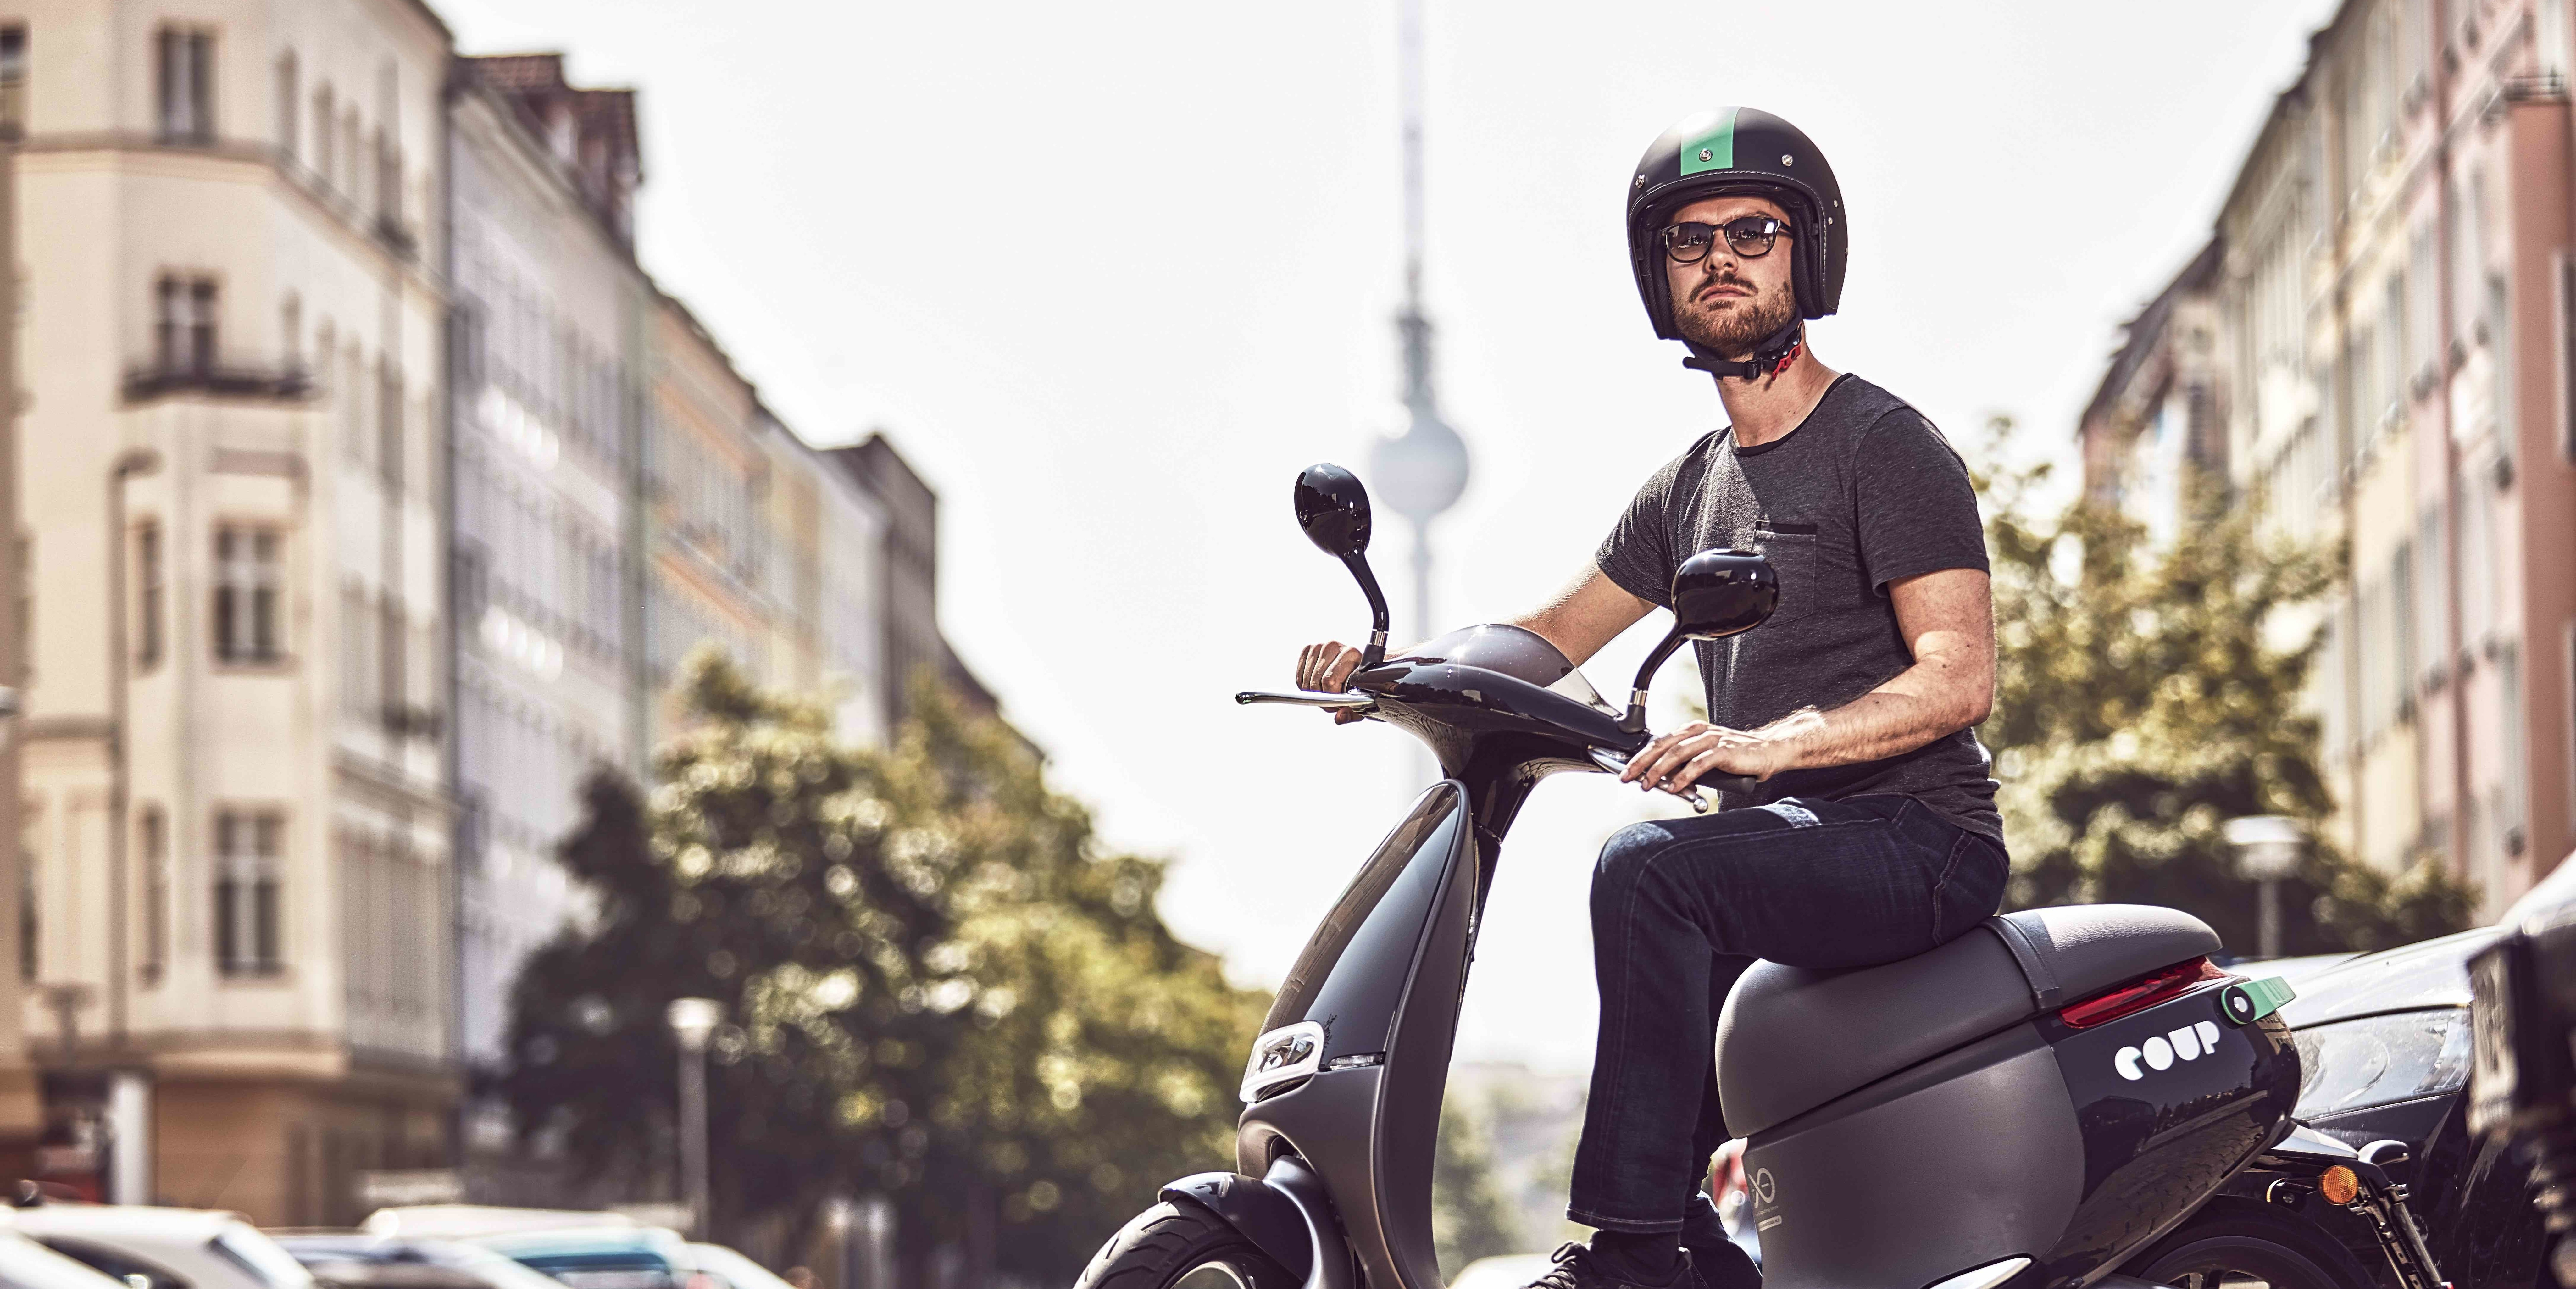 Gogoro And Coup Just Launched A 23 A Day Electric Scooter Scheme In